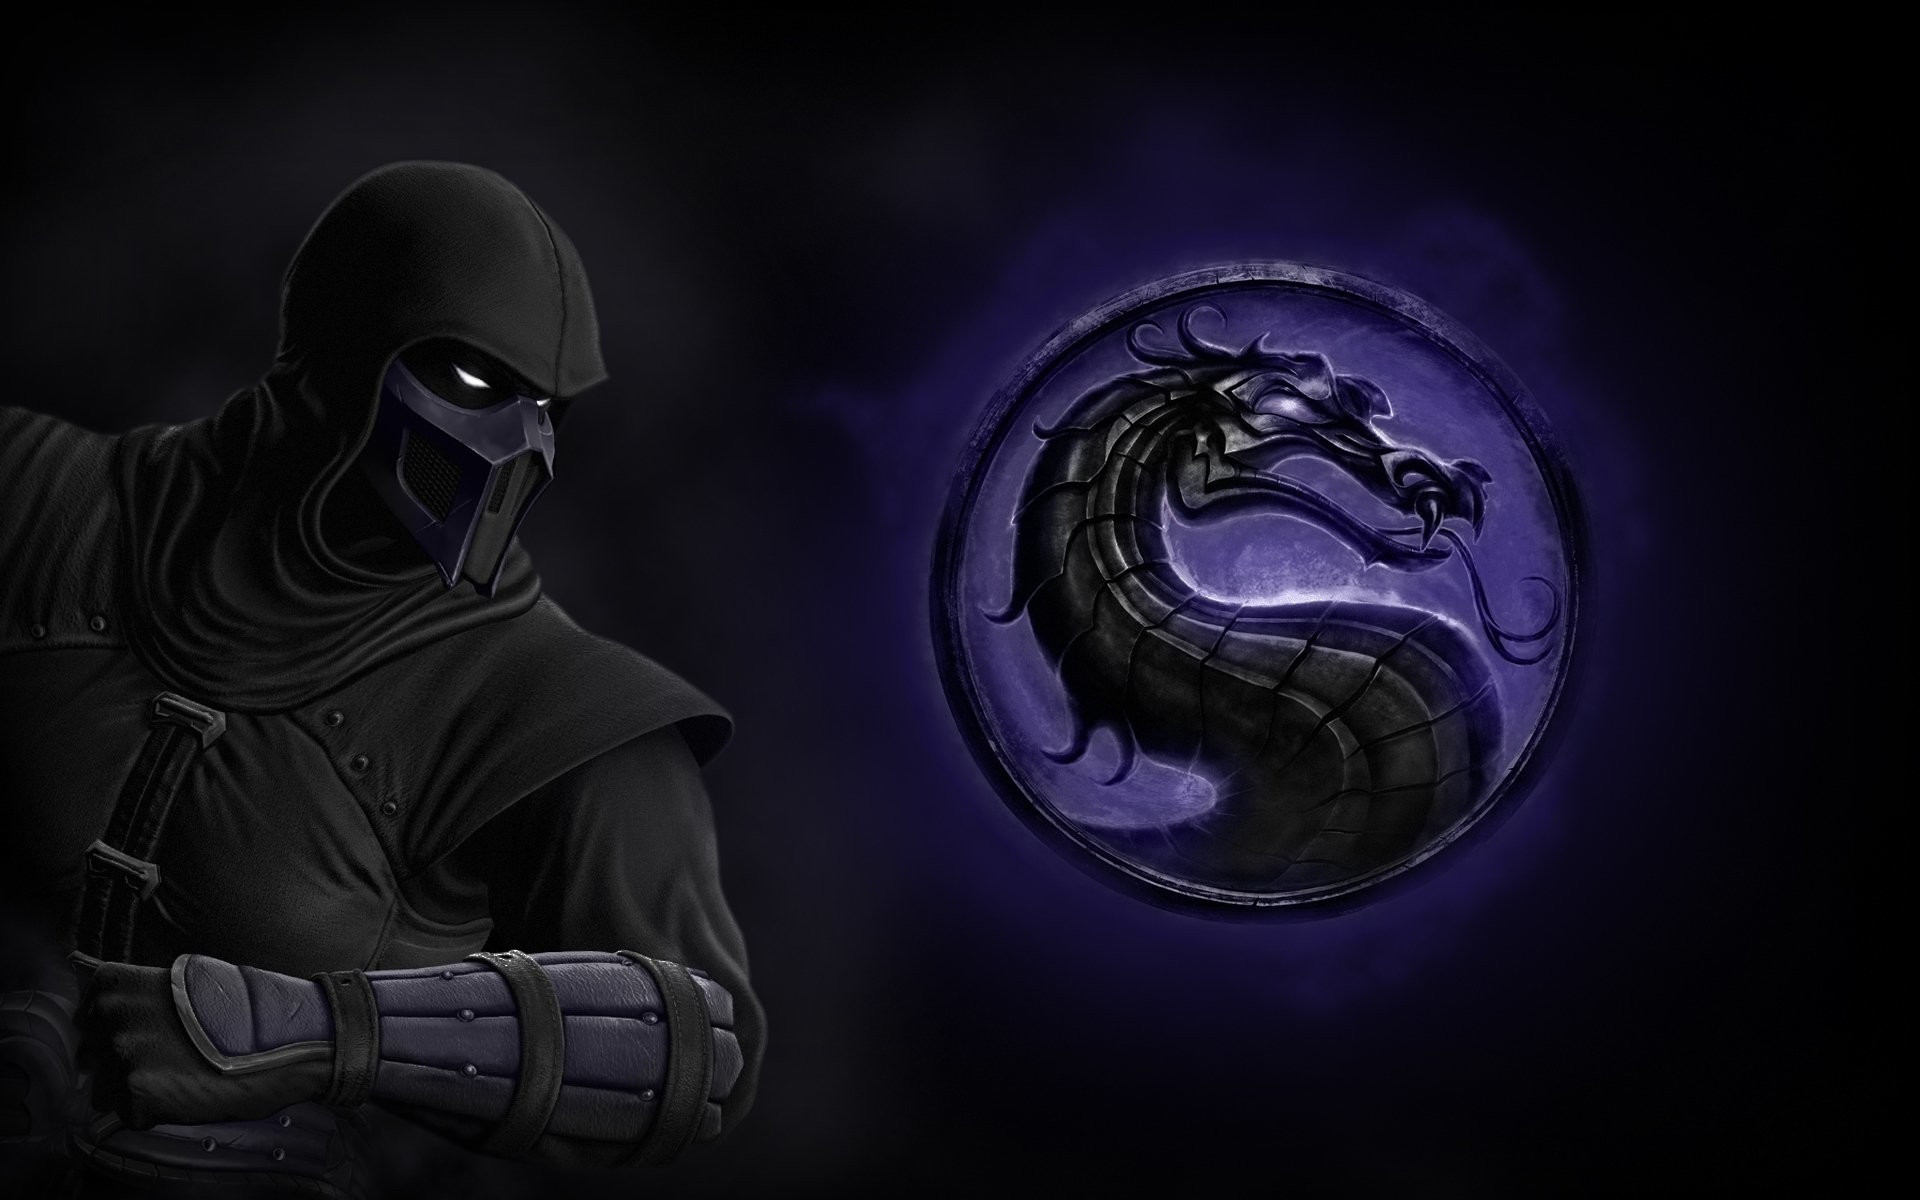 1920x1200 Mortal Kombat Logo HD Wallpaper 27 - 1920 X 1200